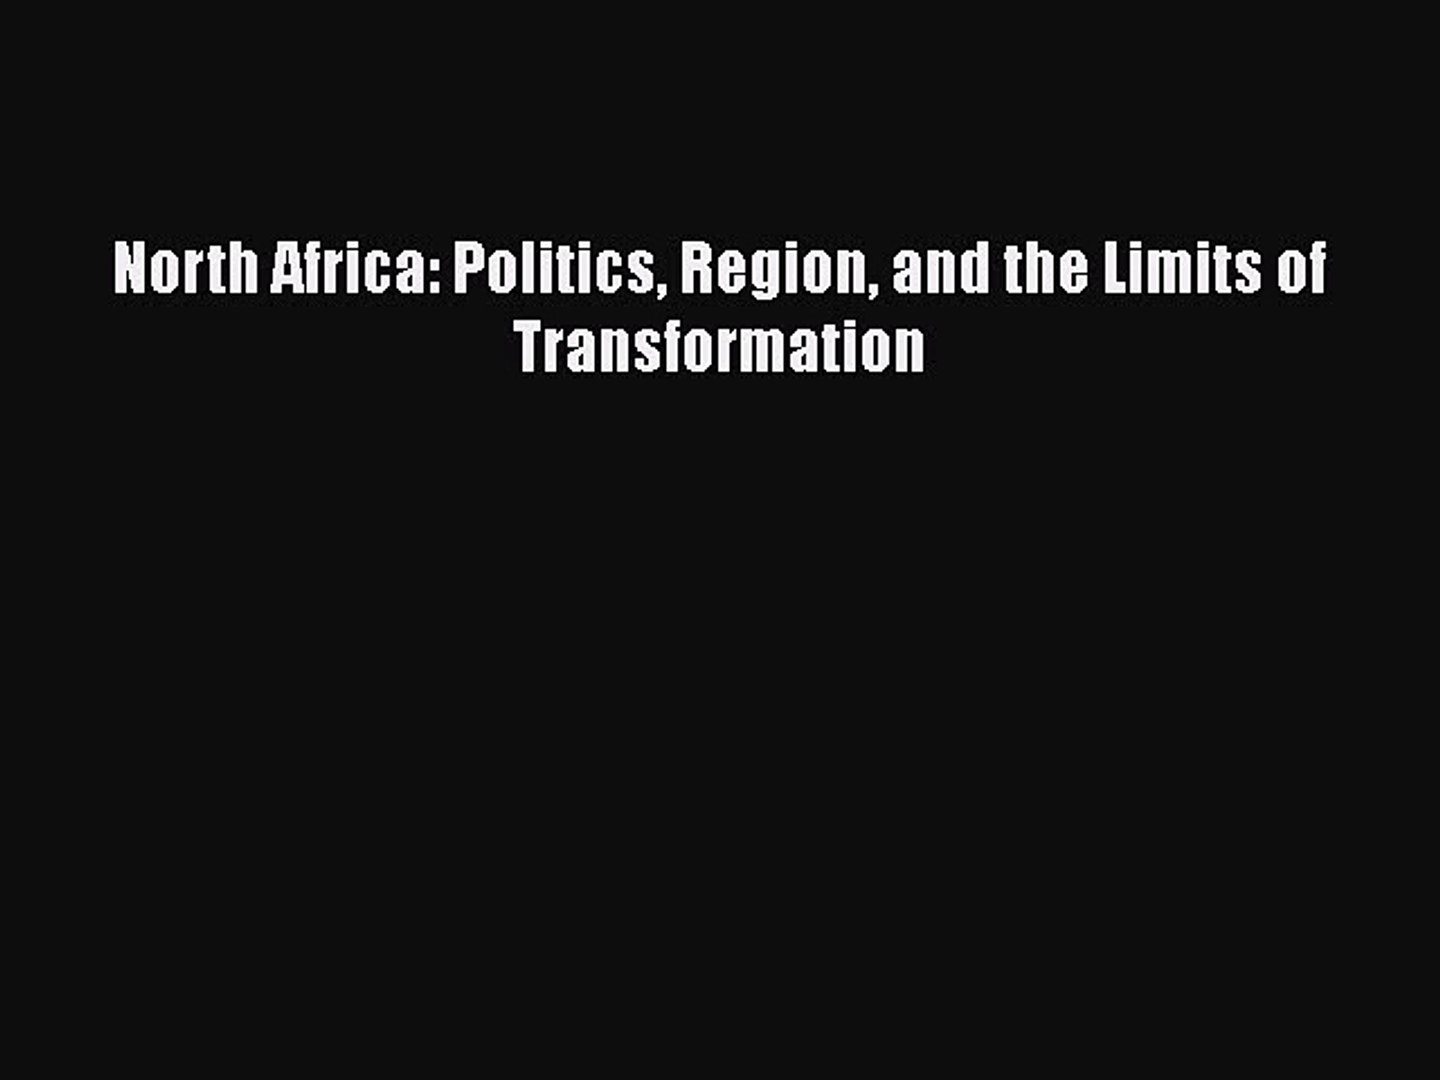 [Download] North Africa: Politics Region and the Limits of Transformation [PDF] Full Ebook